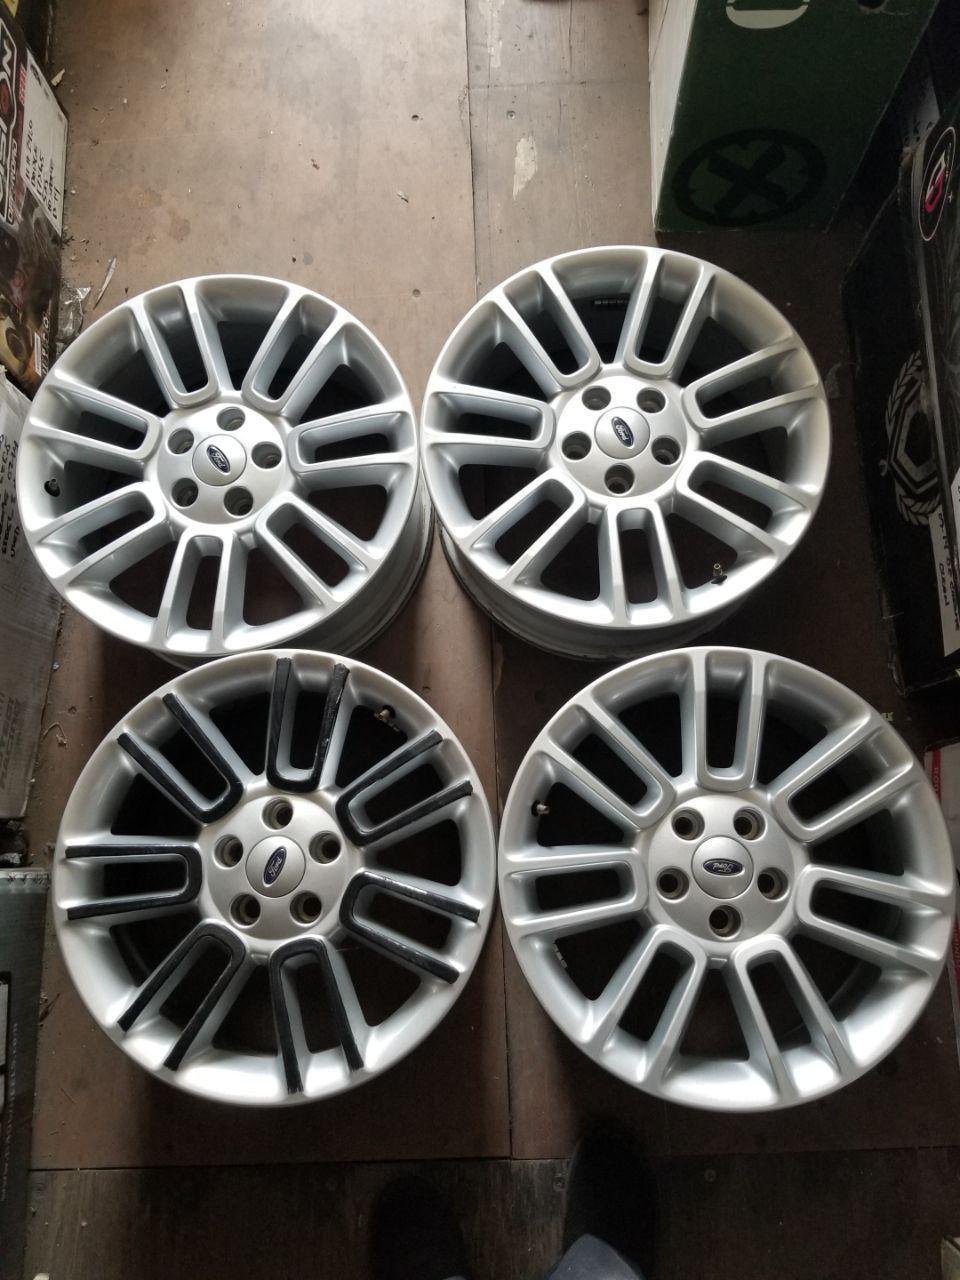 - OEM WHEELS - 2013 FORD FLEX 18x7 7 SPLIT SPOKES Hollander #3932 /  USED